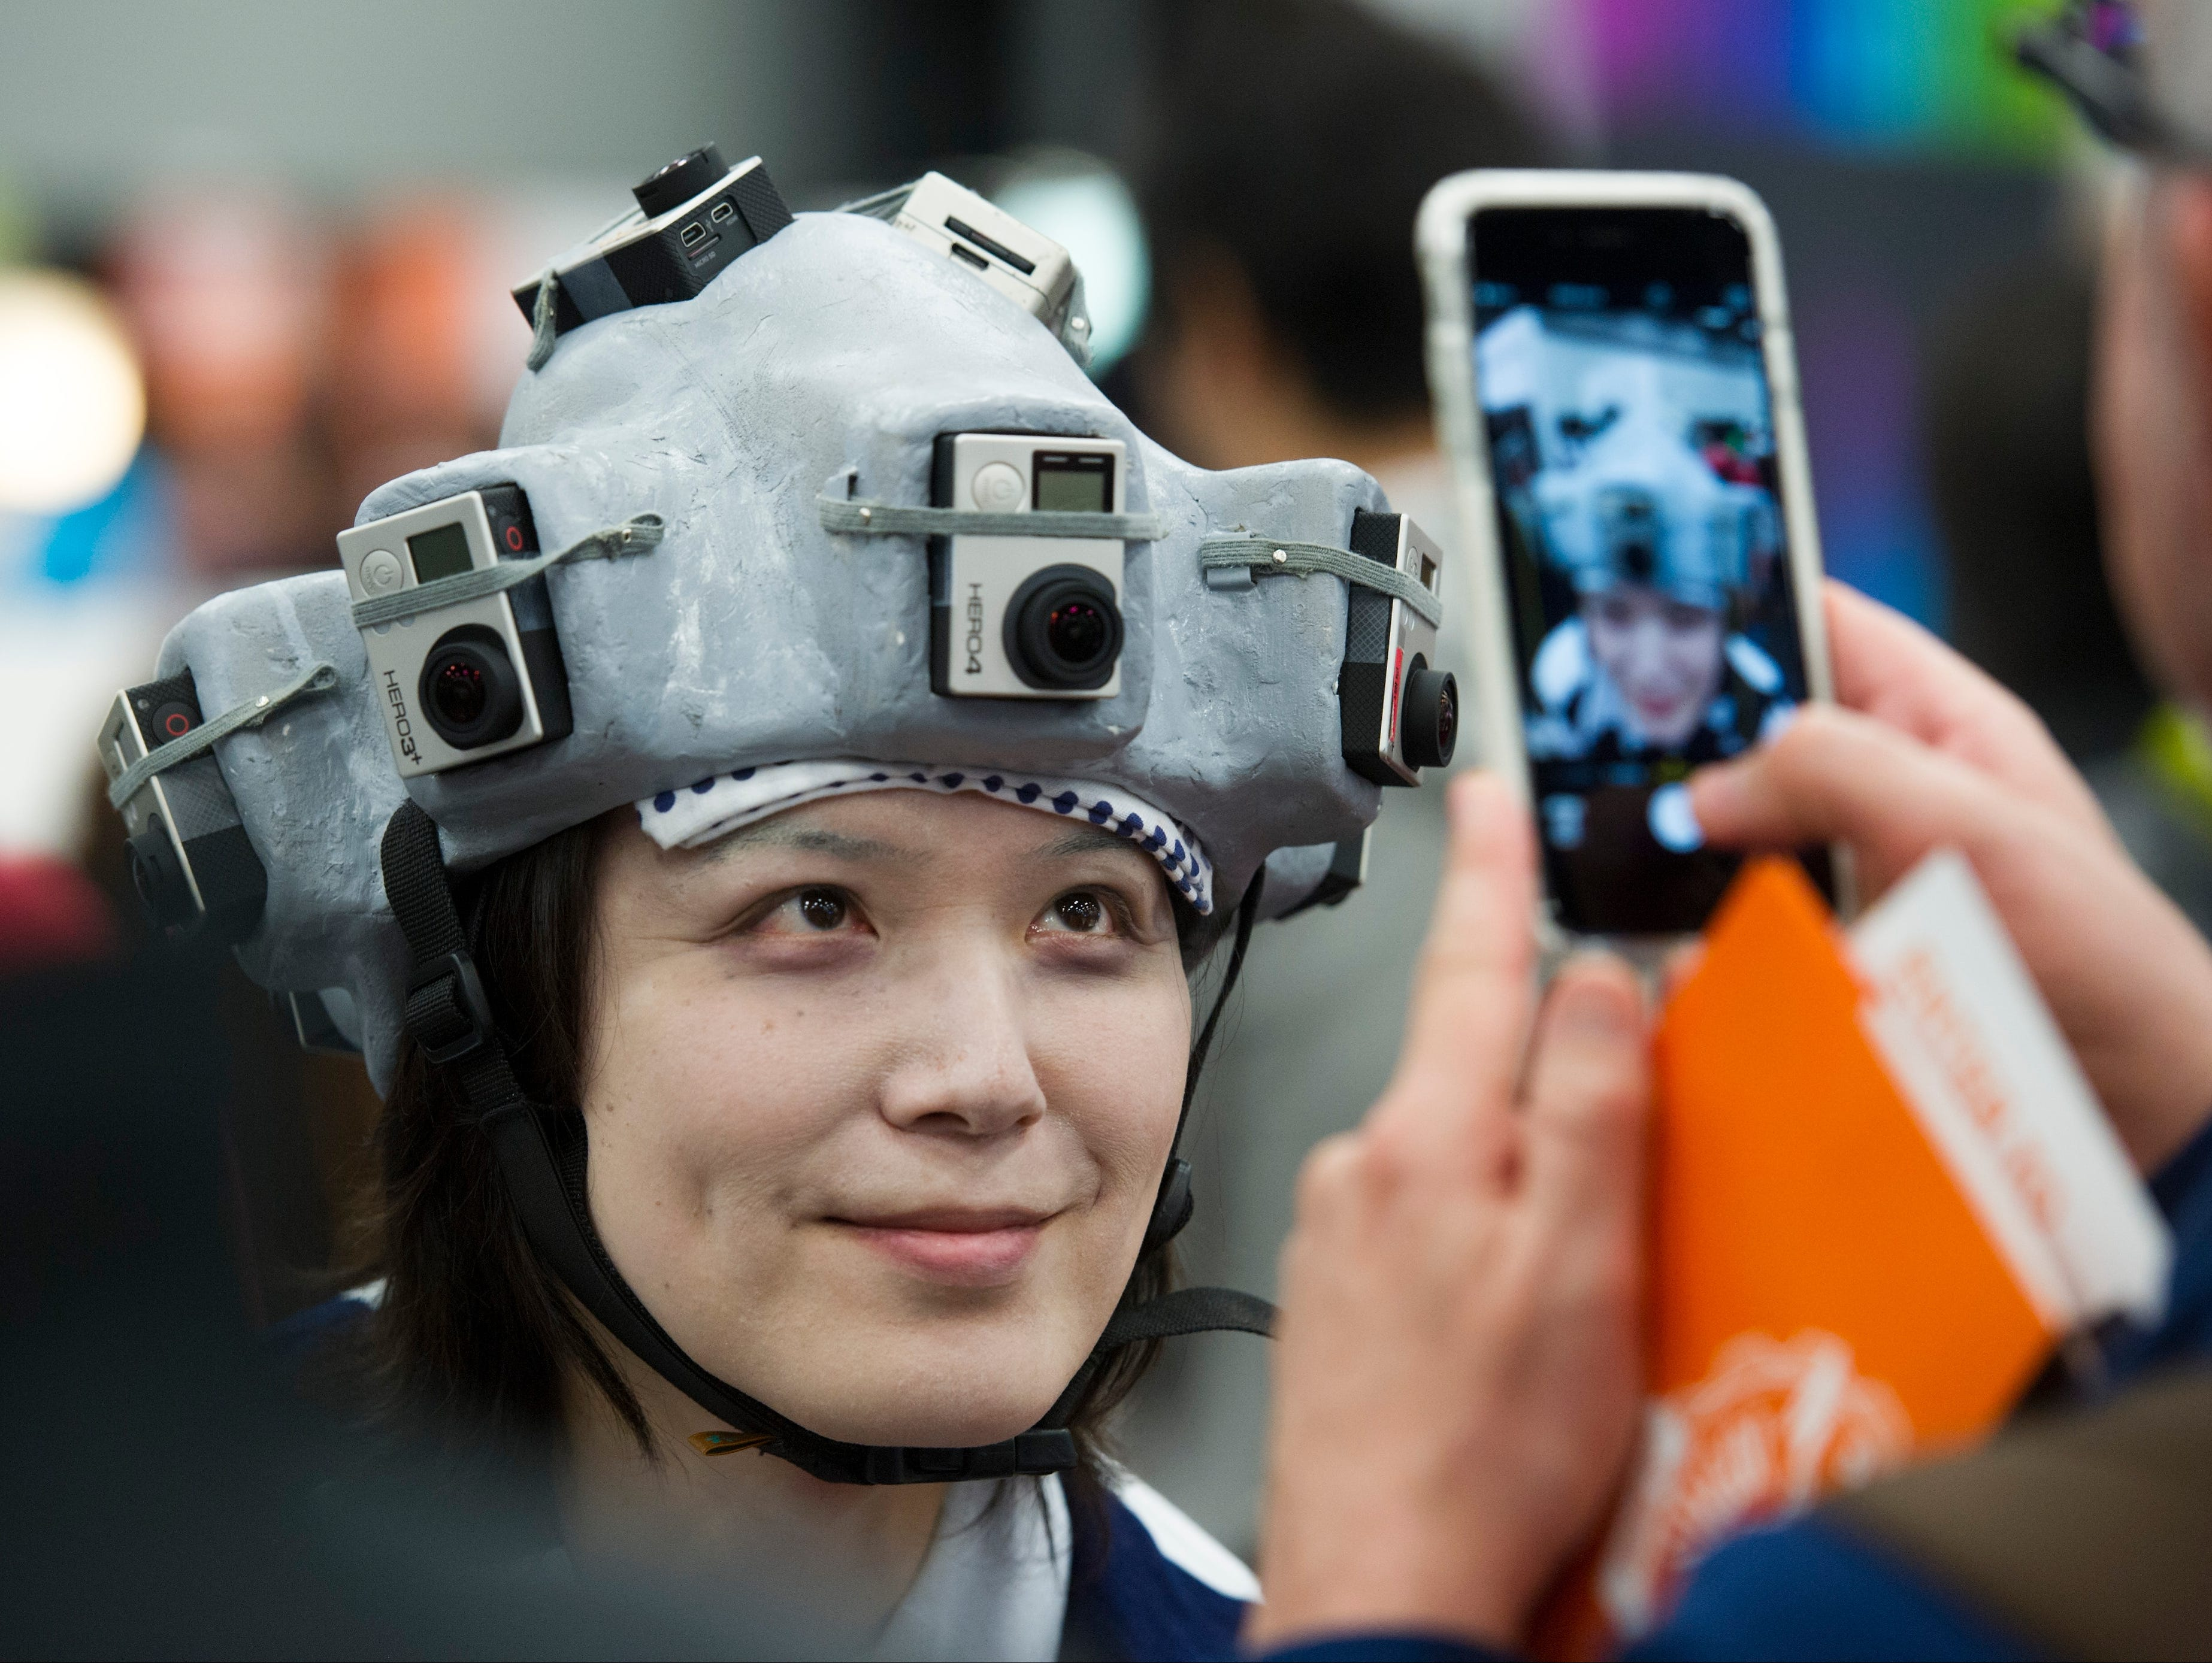 Dverse CEO and Founder Shogo Numakara's image is captured on Day 2 of the SXSW Trade Show, March 15, 2015, in Austin.  Numakara wears a 360-degree panoramic movie headset utilizing ten GoPro devices attached to a helmet to record panoramic movies.